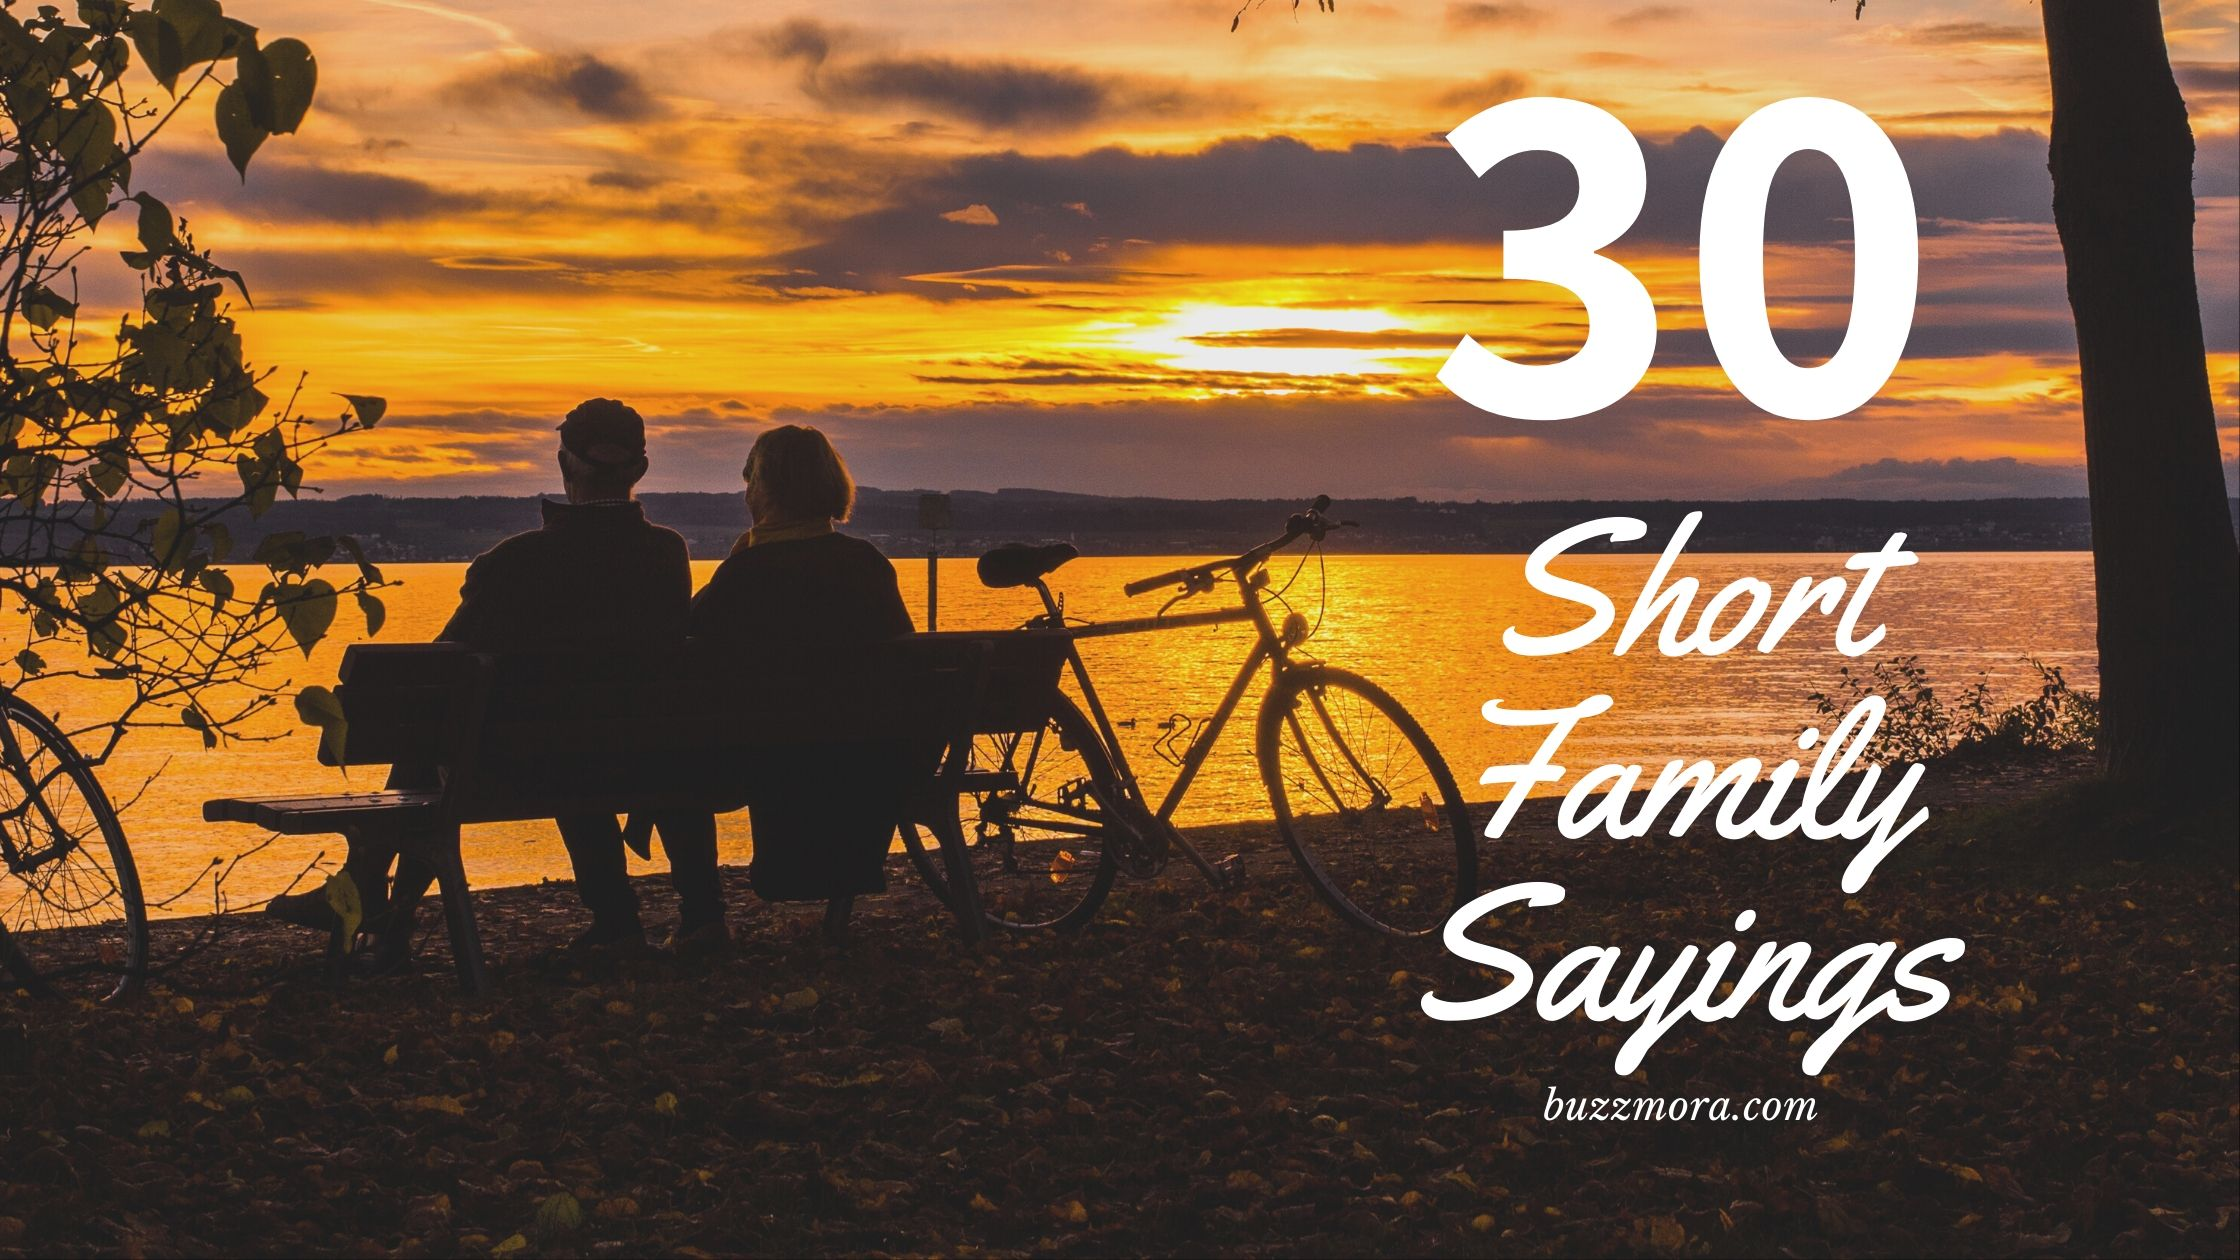 Family Quotes - 20 Short Family Sayings for you